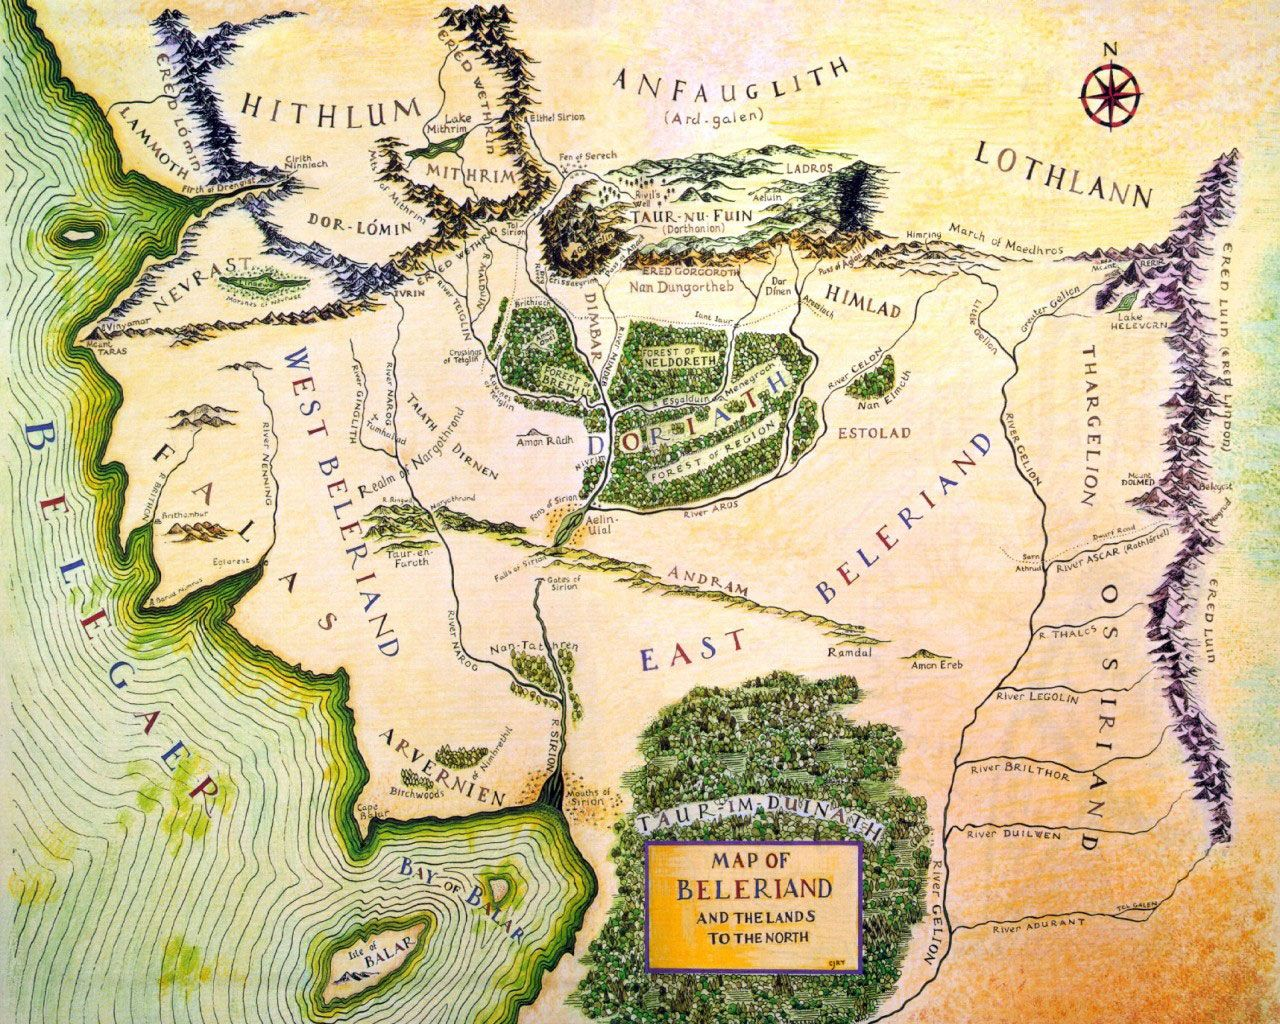 The Wars Of Beleriand Battles From The Silmarillion Ln Family Us Search By Image Battles From The Silmarillion Map Of Beleriand